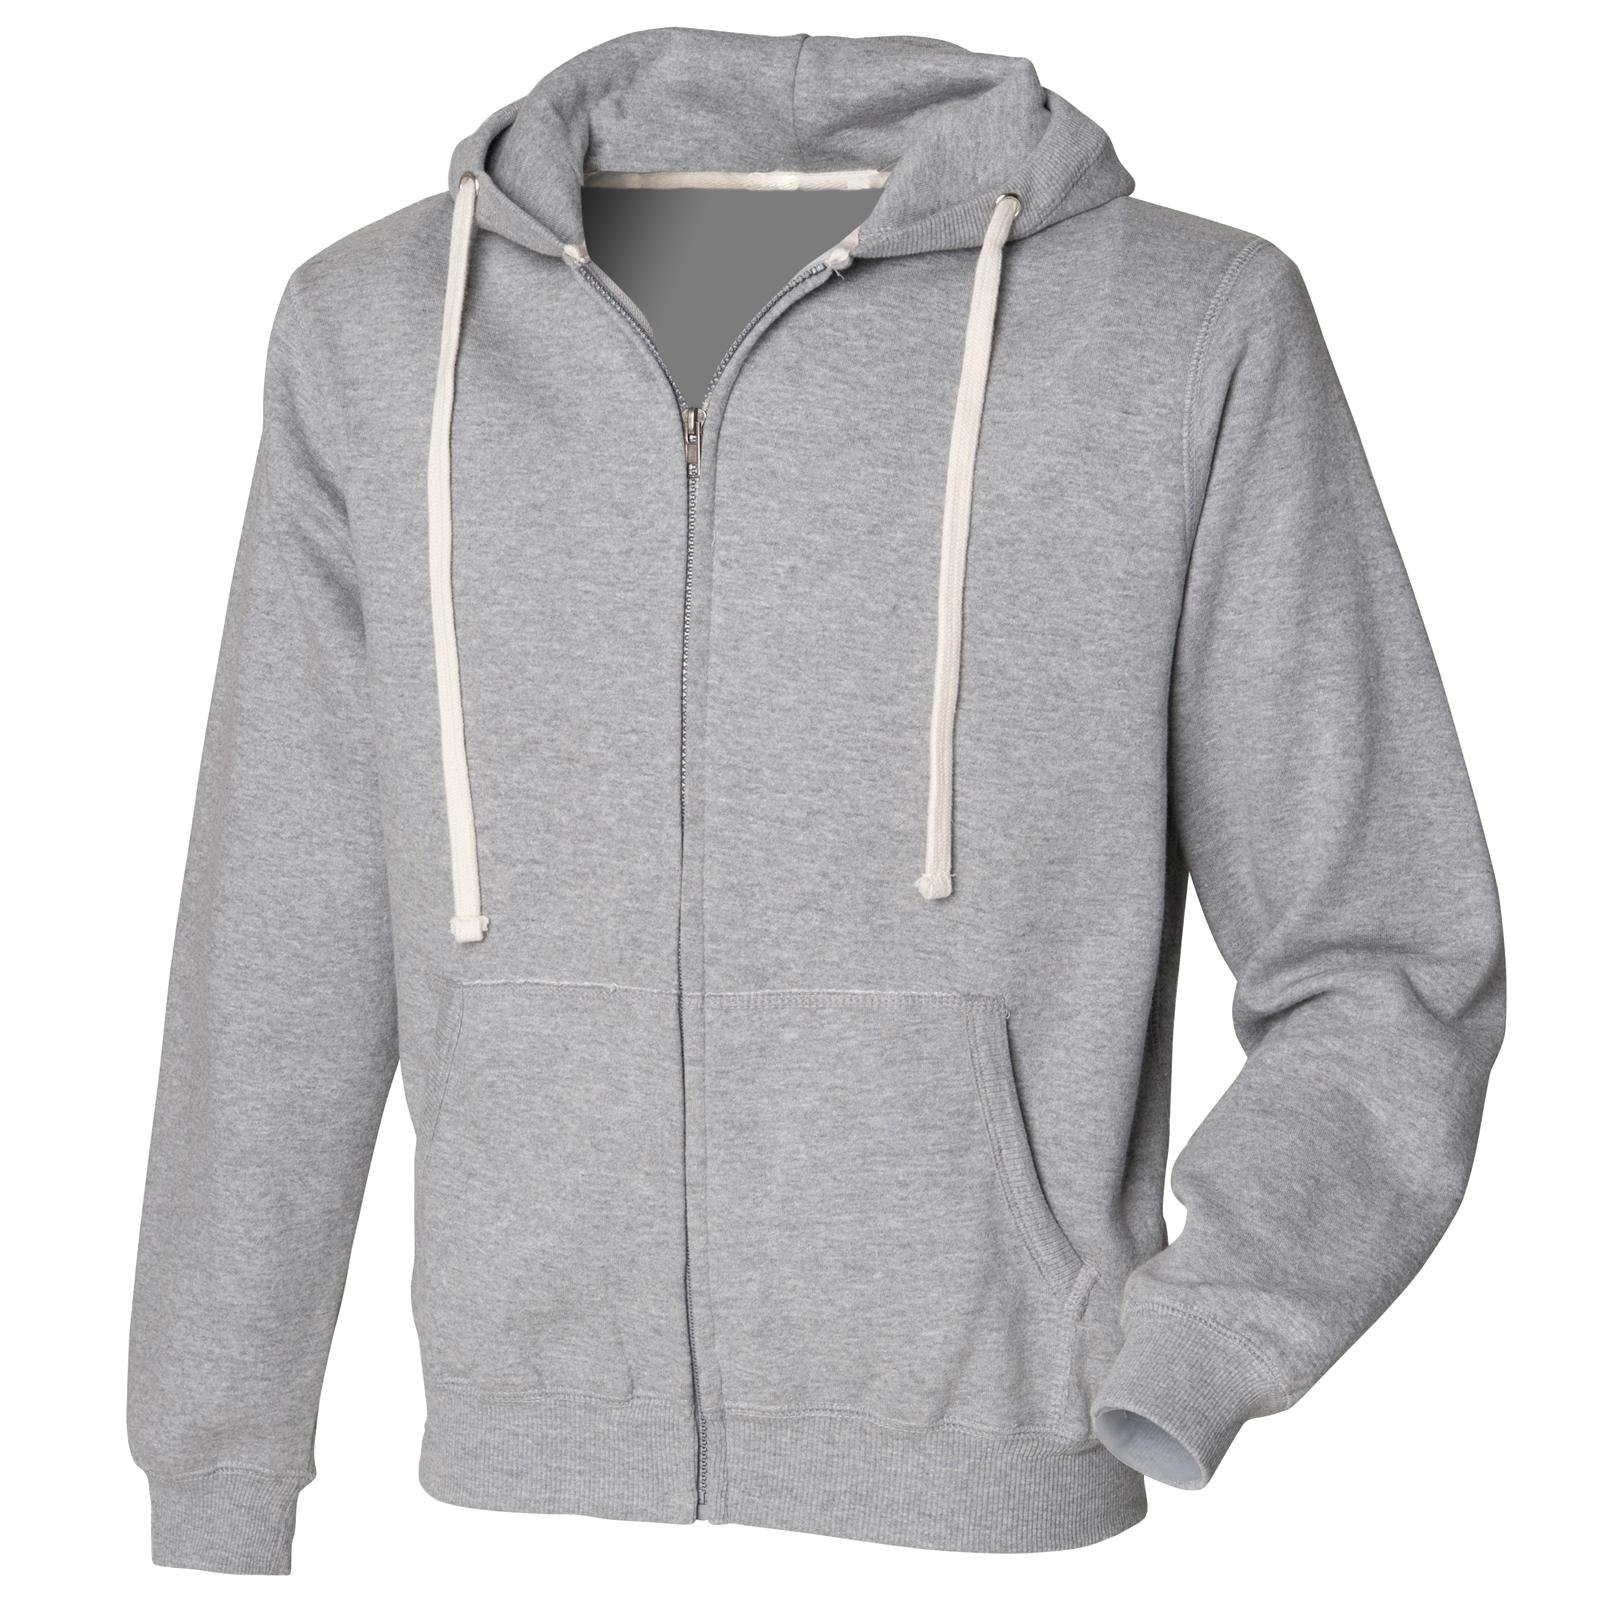 Zip Hoodies Online Personalized Zip-Up Hoodies for Your Group, Team, or Event Start Now Find Your Zip Ups. Gildan Midweight Zip Hoodie We offer a great selection of high-quality zip-ups for you to choose from for men, women, and even kids! Our online design lab makes it super easy to create your group's hoodies, plus it's a whole lot of.